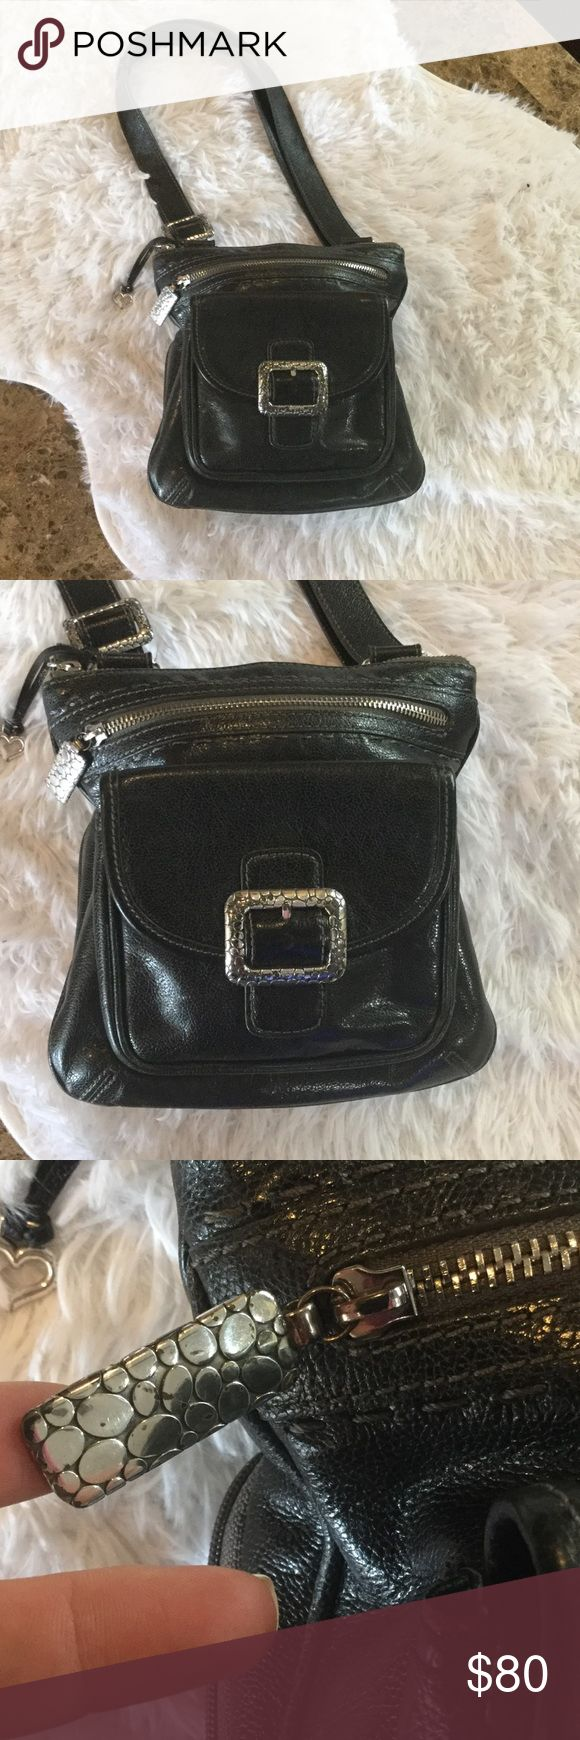 Rare genuine leather Brighton purse Many compartments wallet area on back overall good used condition Brighton Bags Crossbody Bags